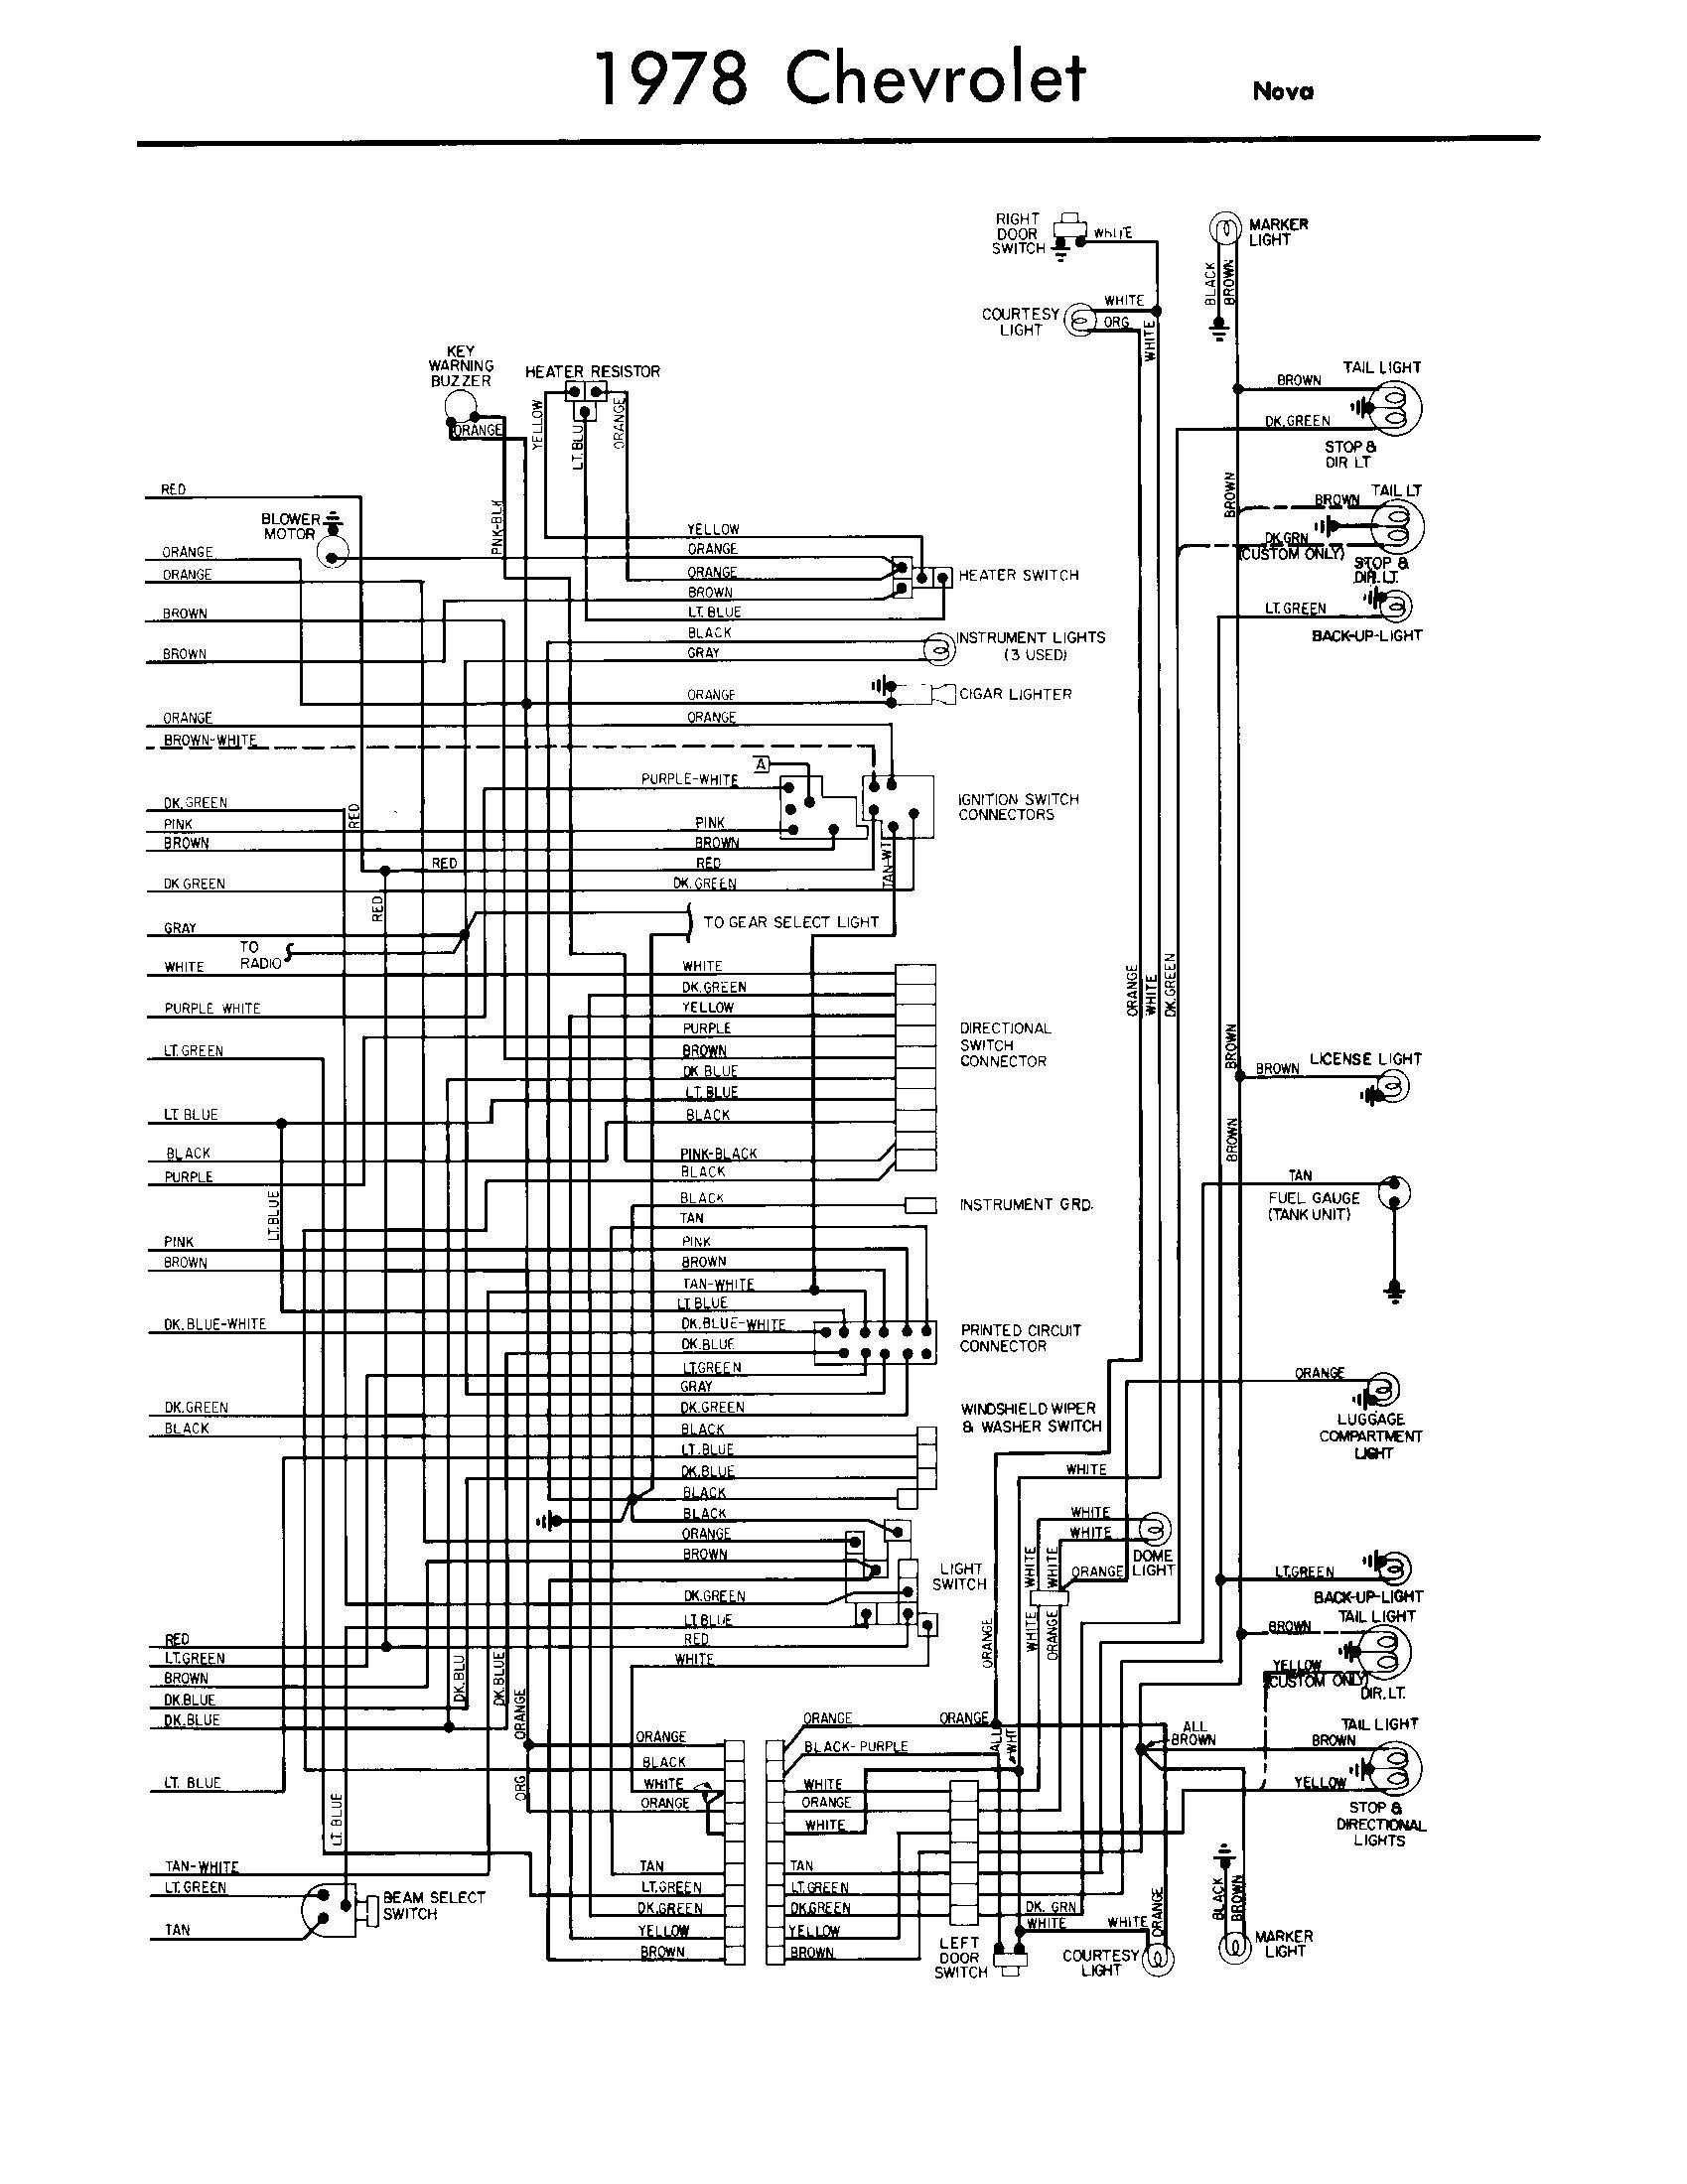 1983 camaro horn diagram automotive block diagram \u2022 1967 Camaro Fuse Box Diagram at 1889 Camaro Rs Fuse Box Diagram